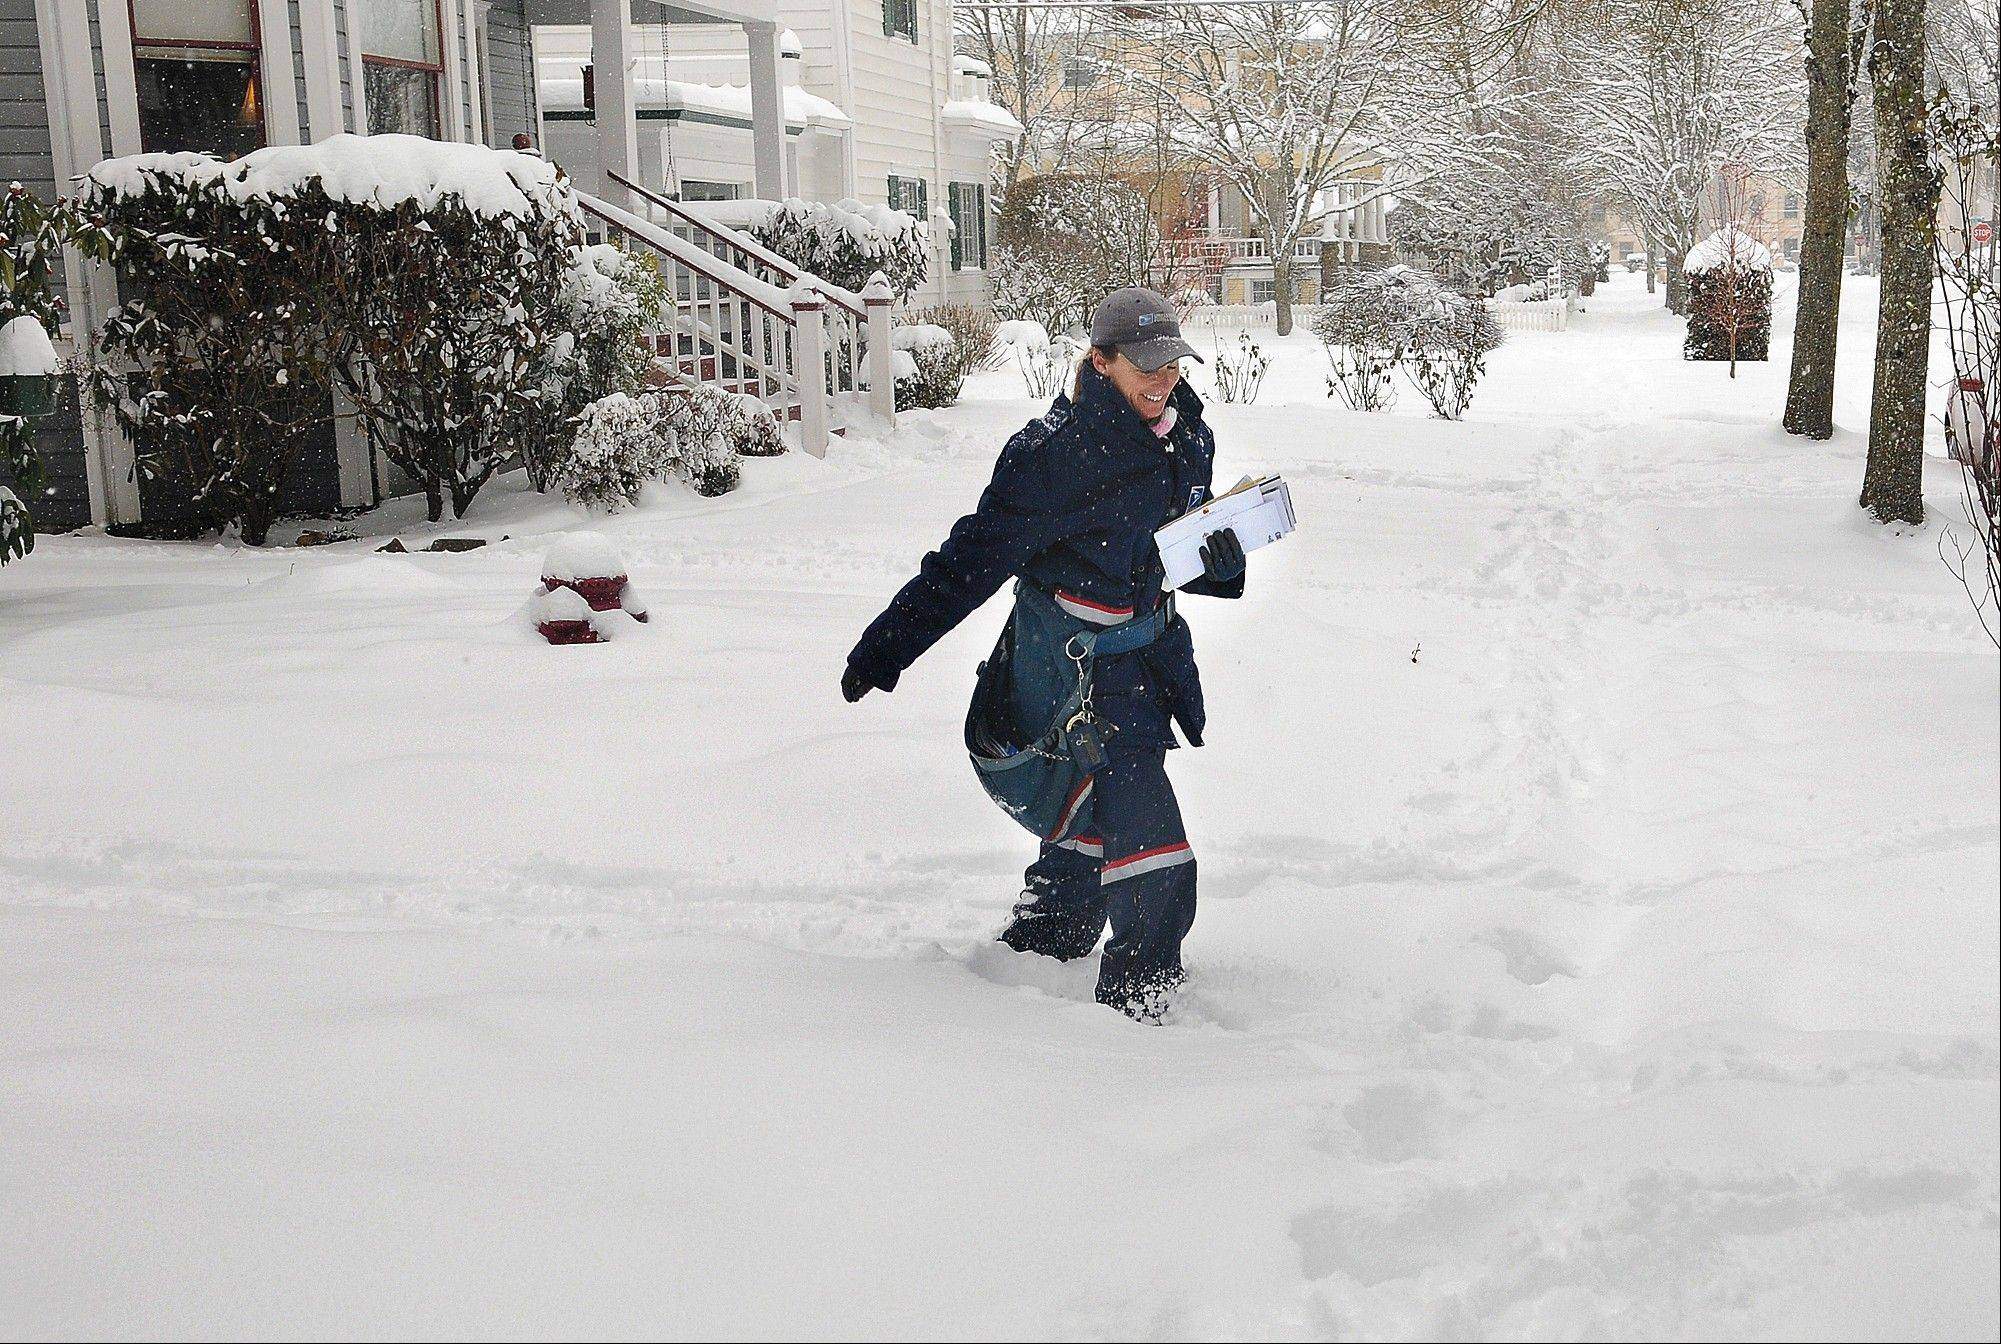 Mail carrier Tammie Harris trudges through the snow while delivering to homes in the Monteith District of Albany, Ore., Friday. More than a foot of snow has fallen in the Willamette Valley community during the last two days. The area, known for its rain, rarely sees more than a few inches of the white stuff a year.